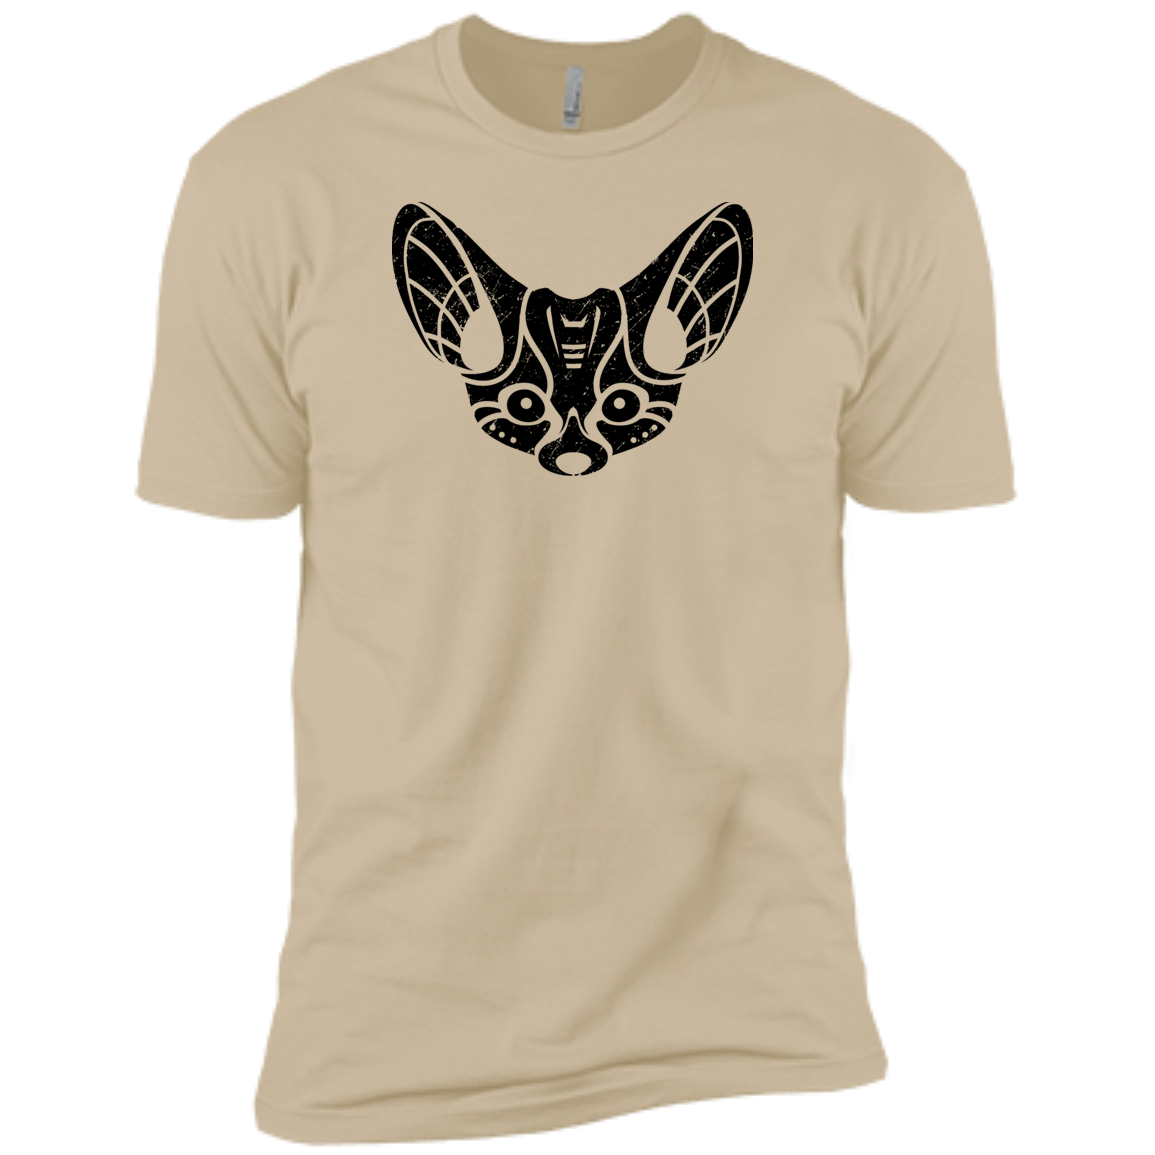 Black Distressed Emblem (Fennec Fox/Fen) - Dark Corps